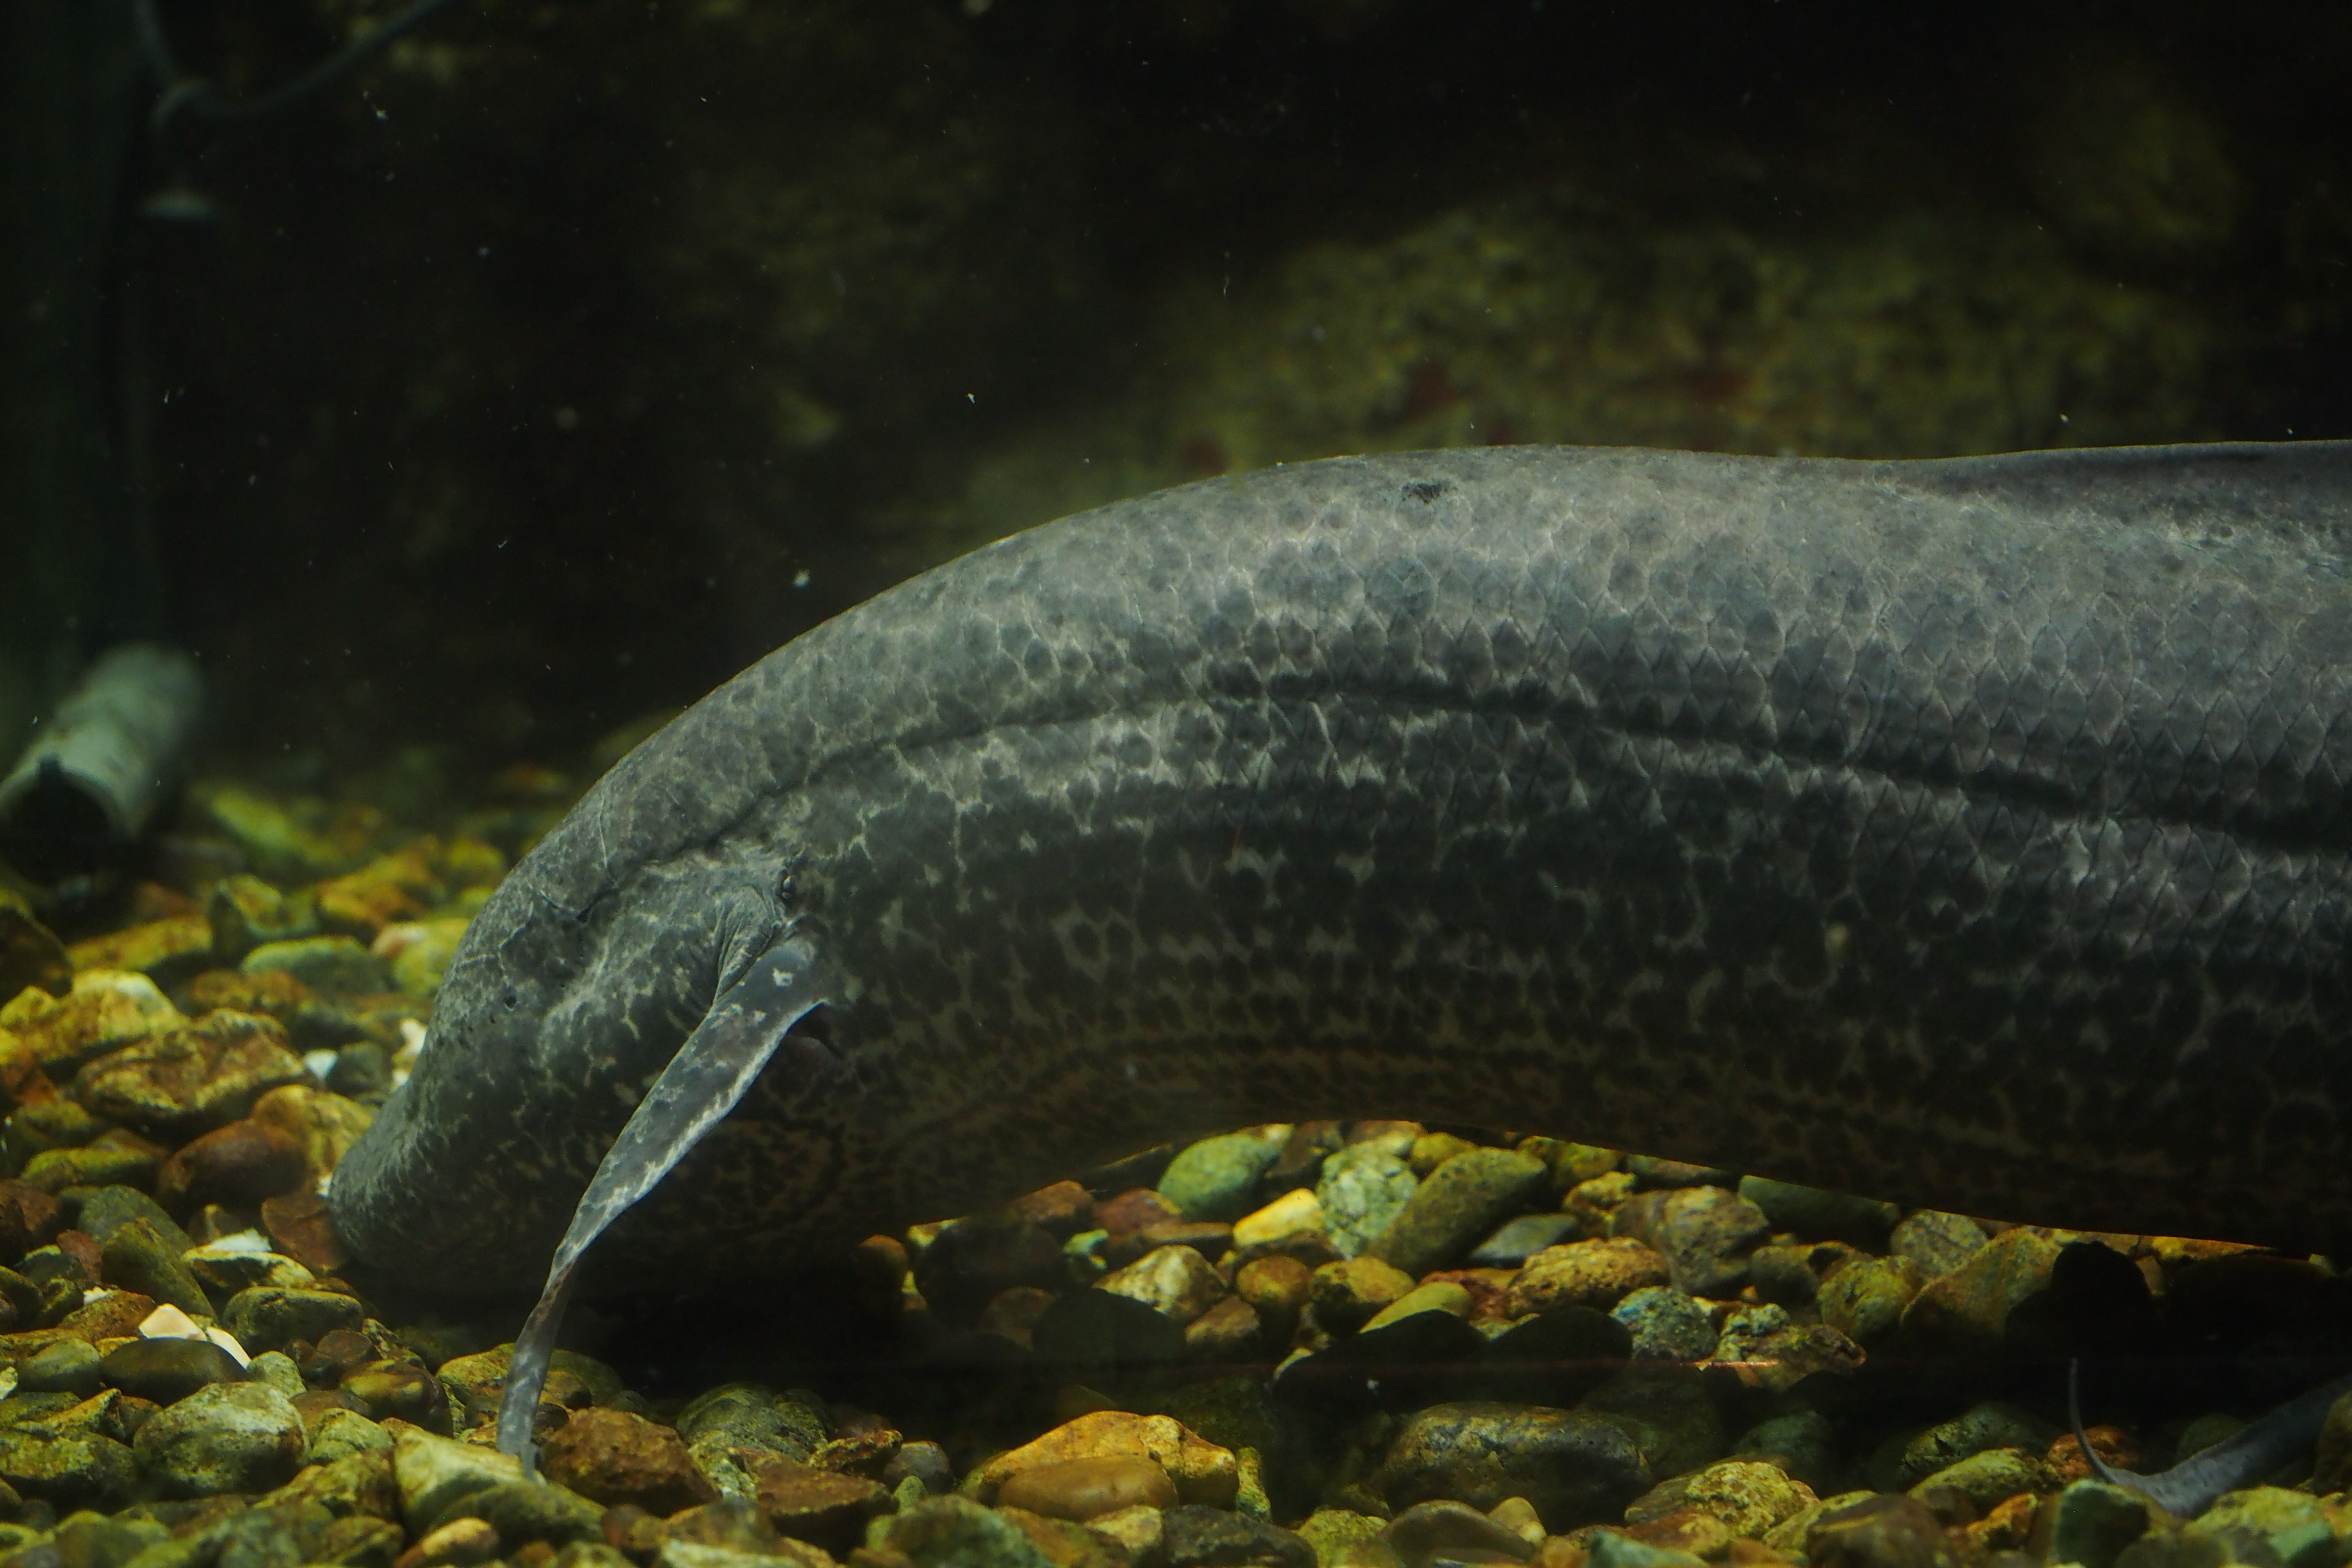 File:African lungfish (15779867175).jpg - Wikimedia Commons